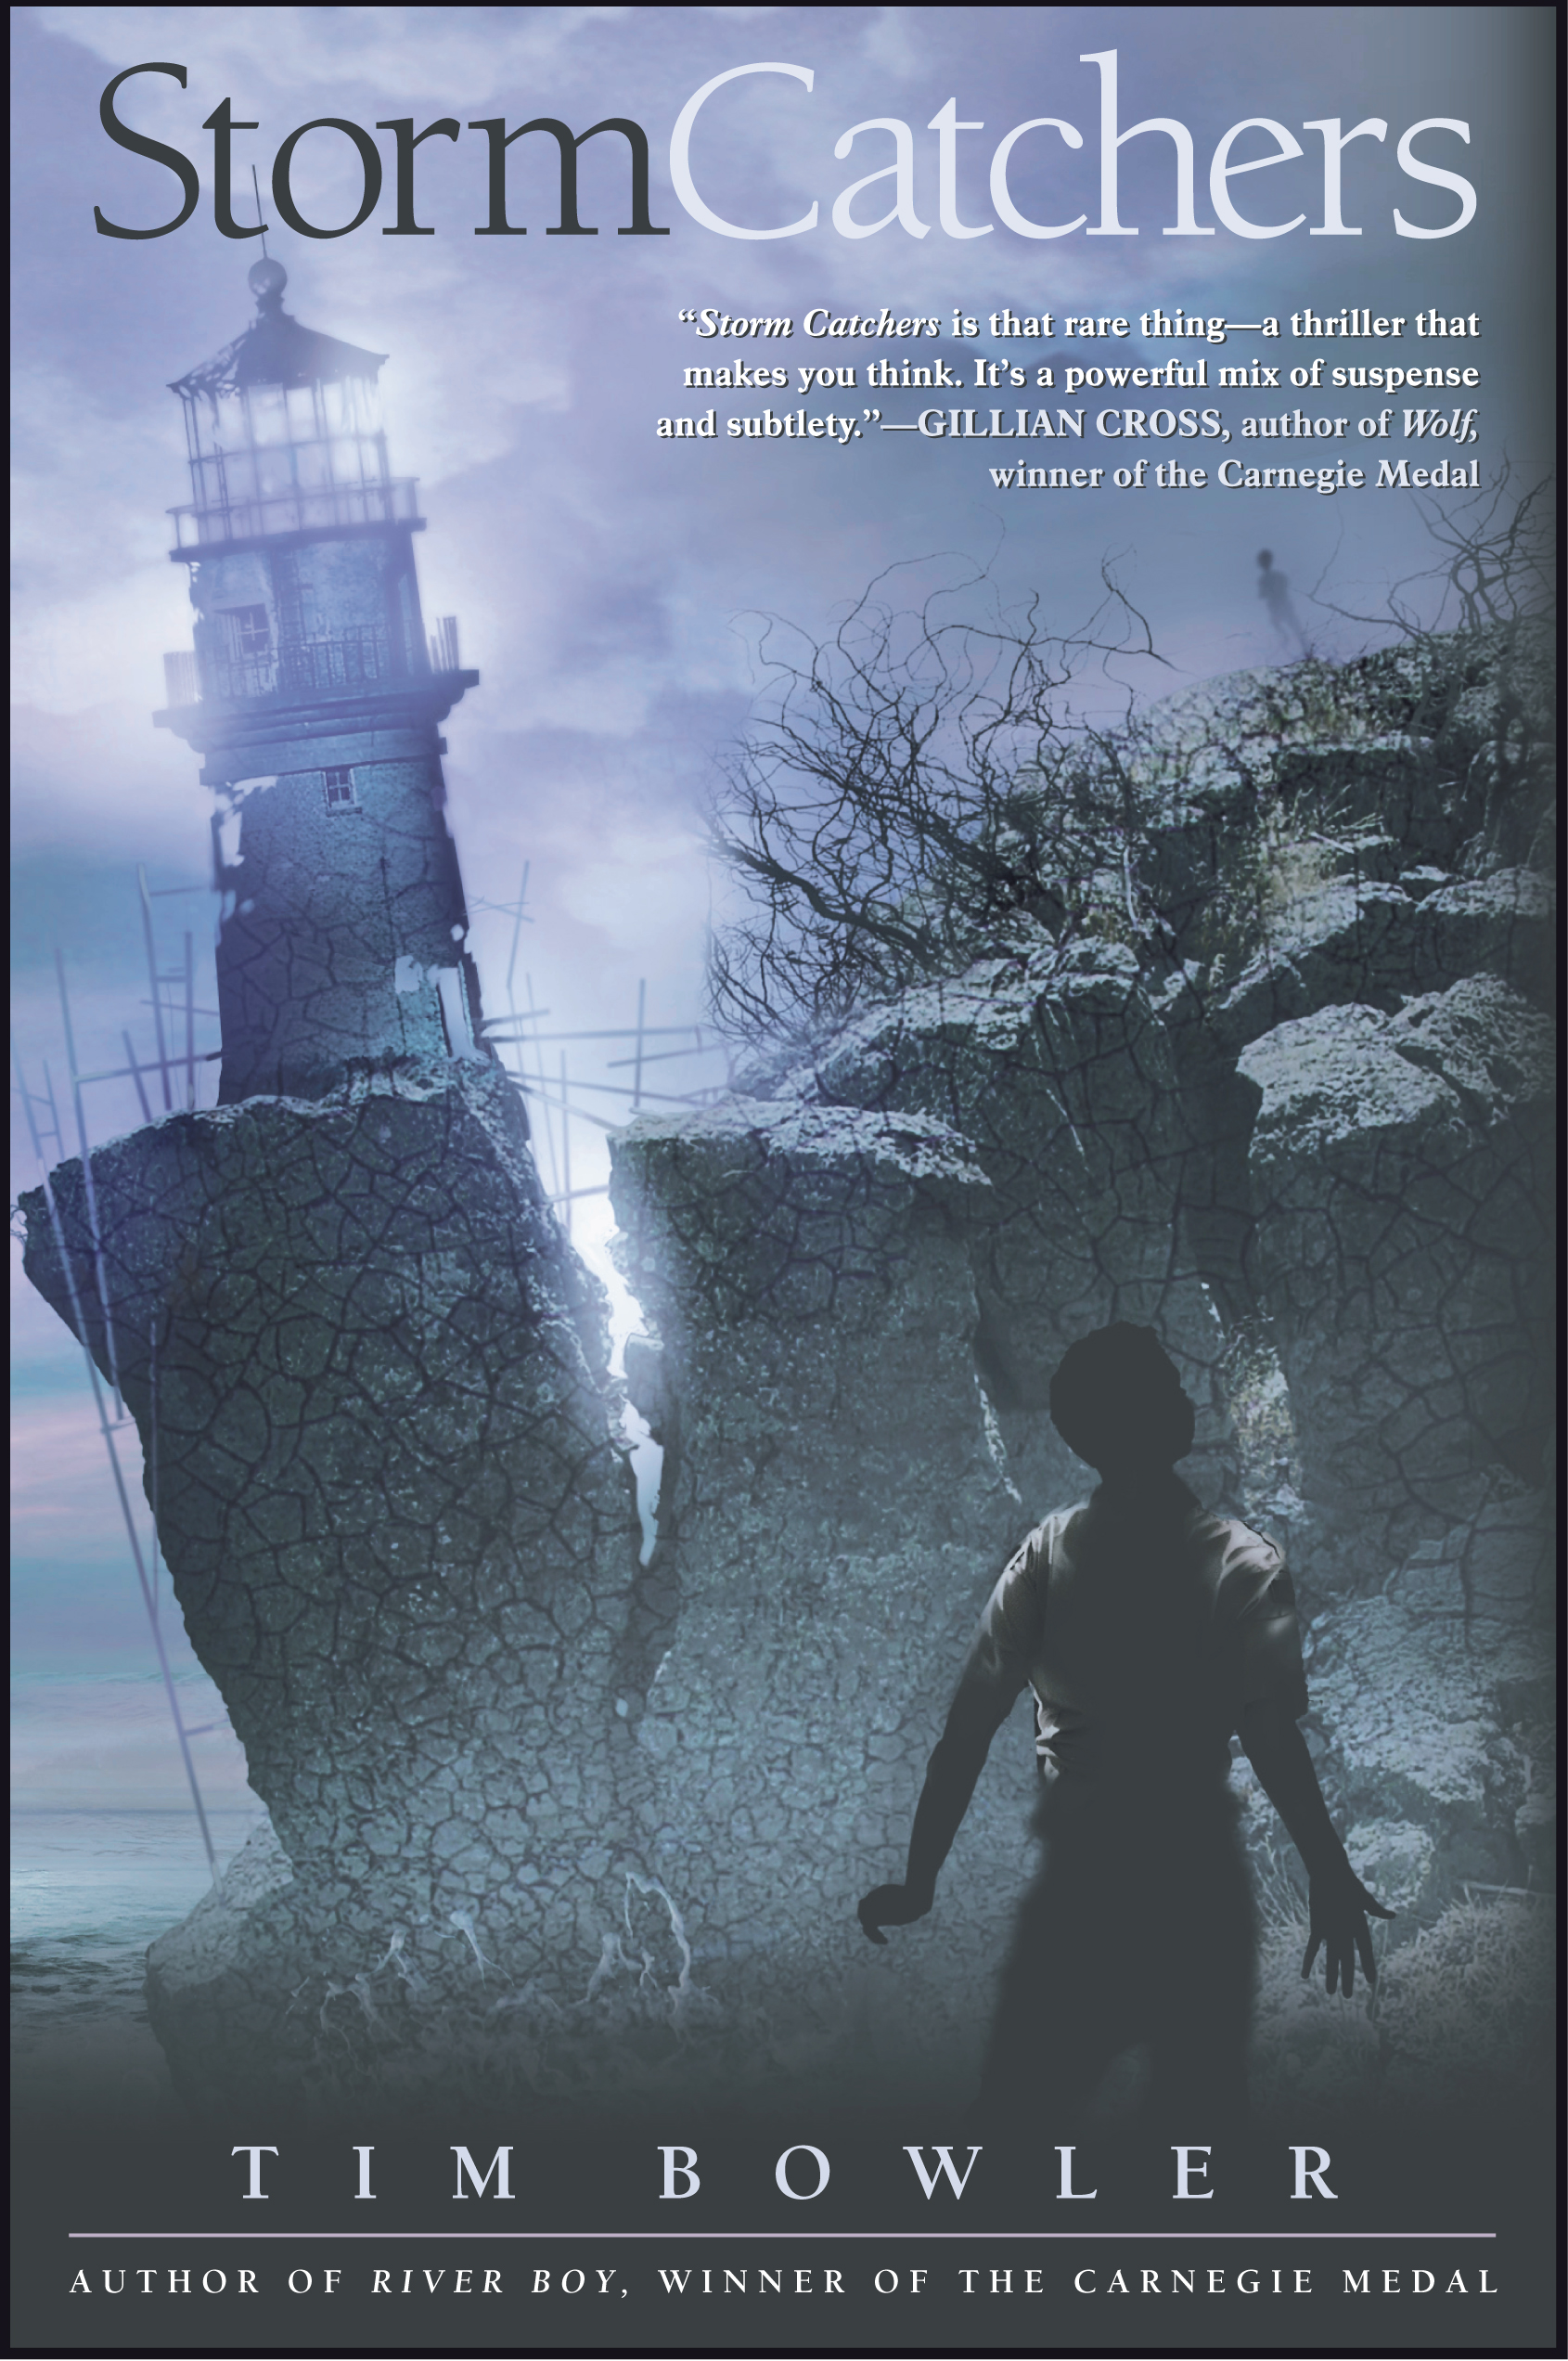 Storm Catchers | Book by Tim Bowler | Official Publisher Page